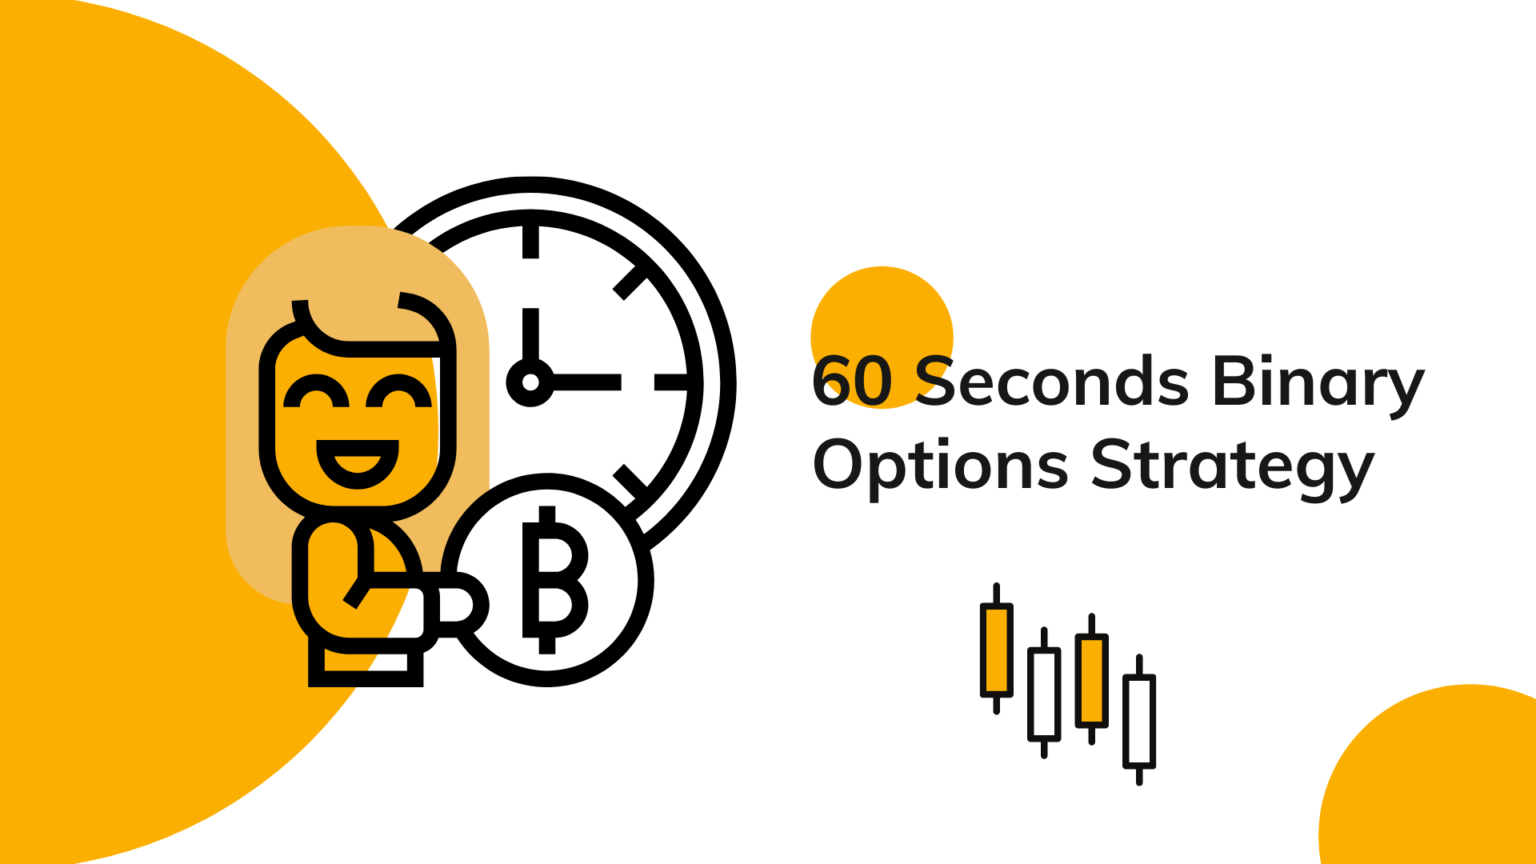 60 Seconds Binary Options Strategy